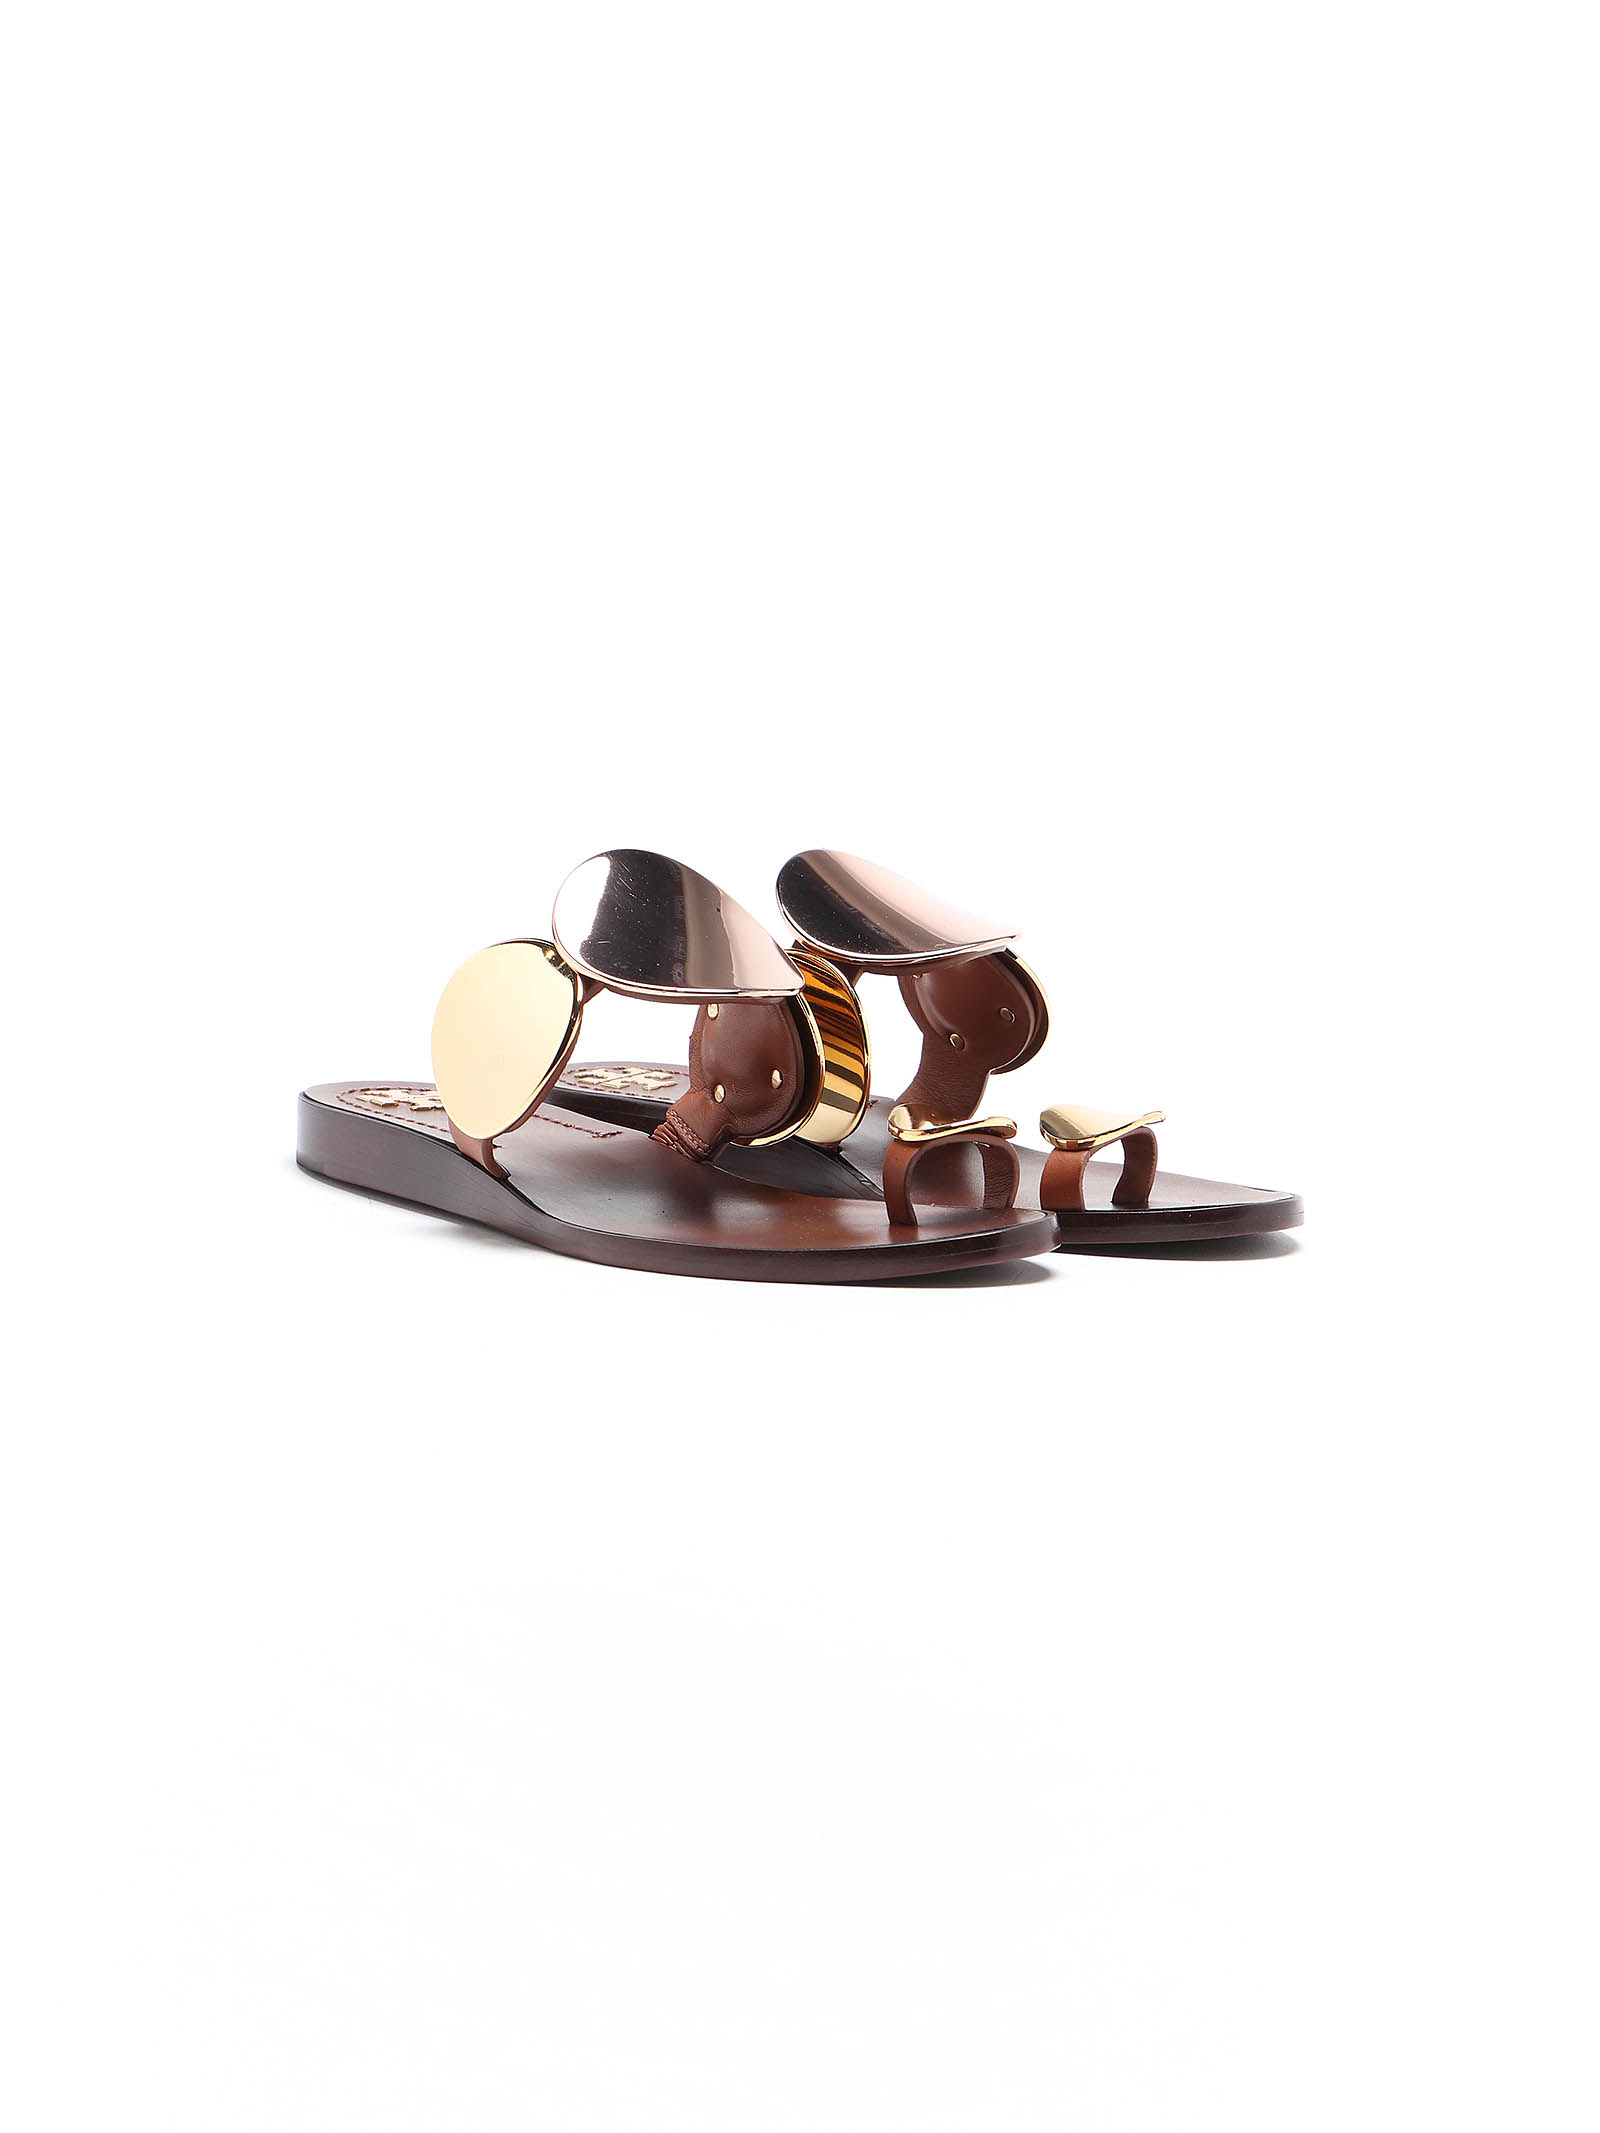 Picture of Tory Burch | Patos Multi Disk Sandal